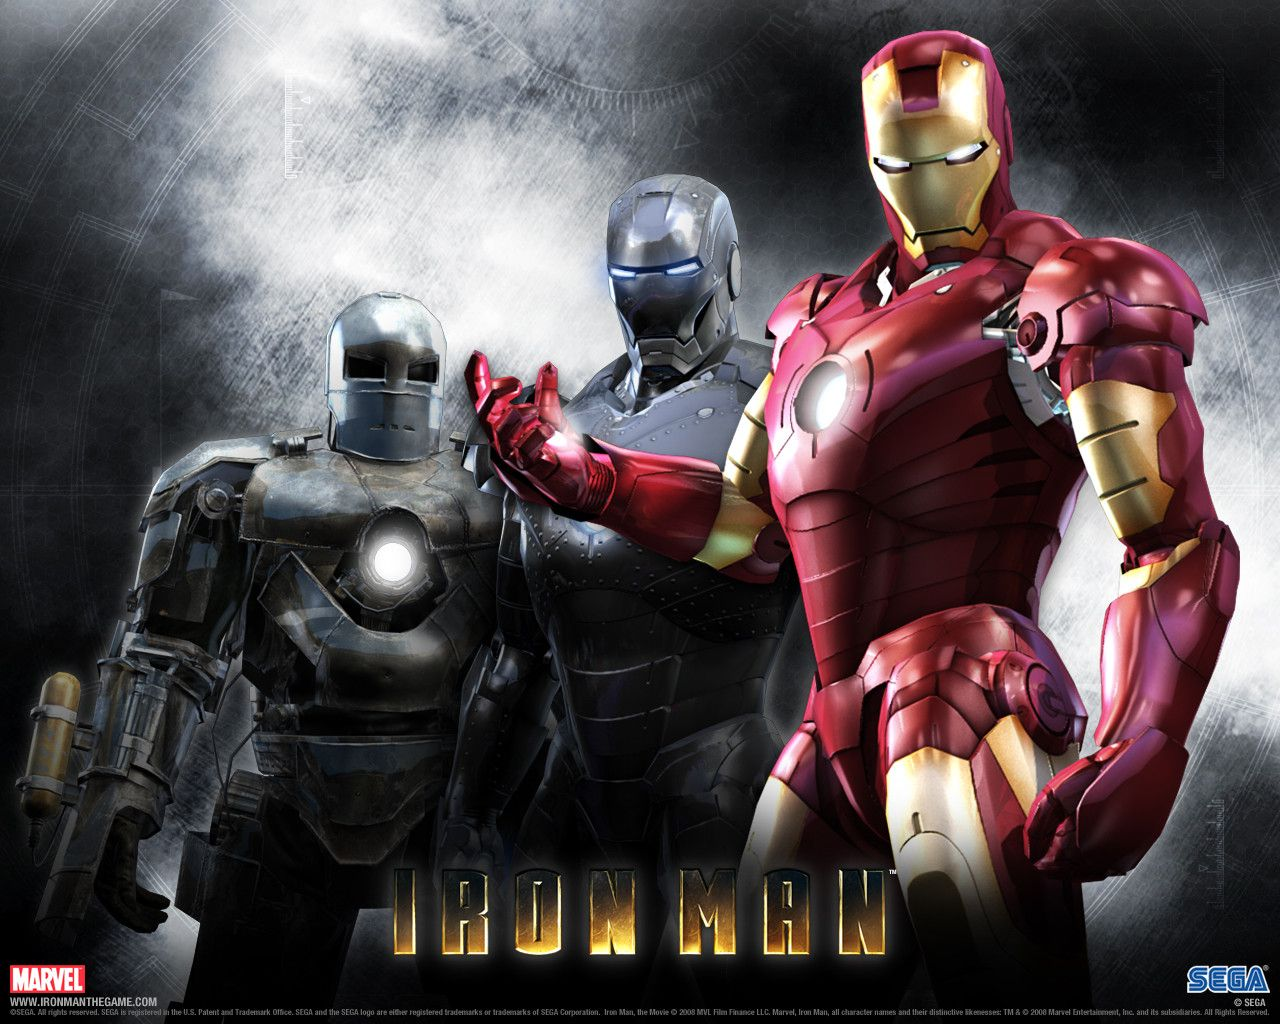 Megapost Wallpapers Hd De Iron Man Uno Te Llevas Iron Man